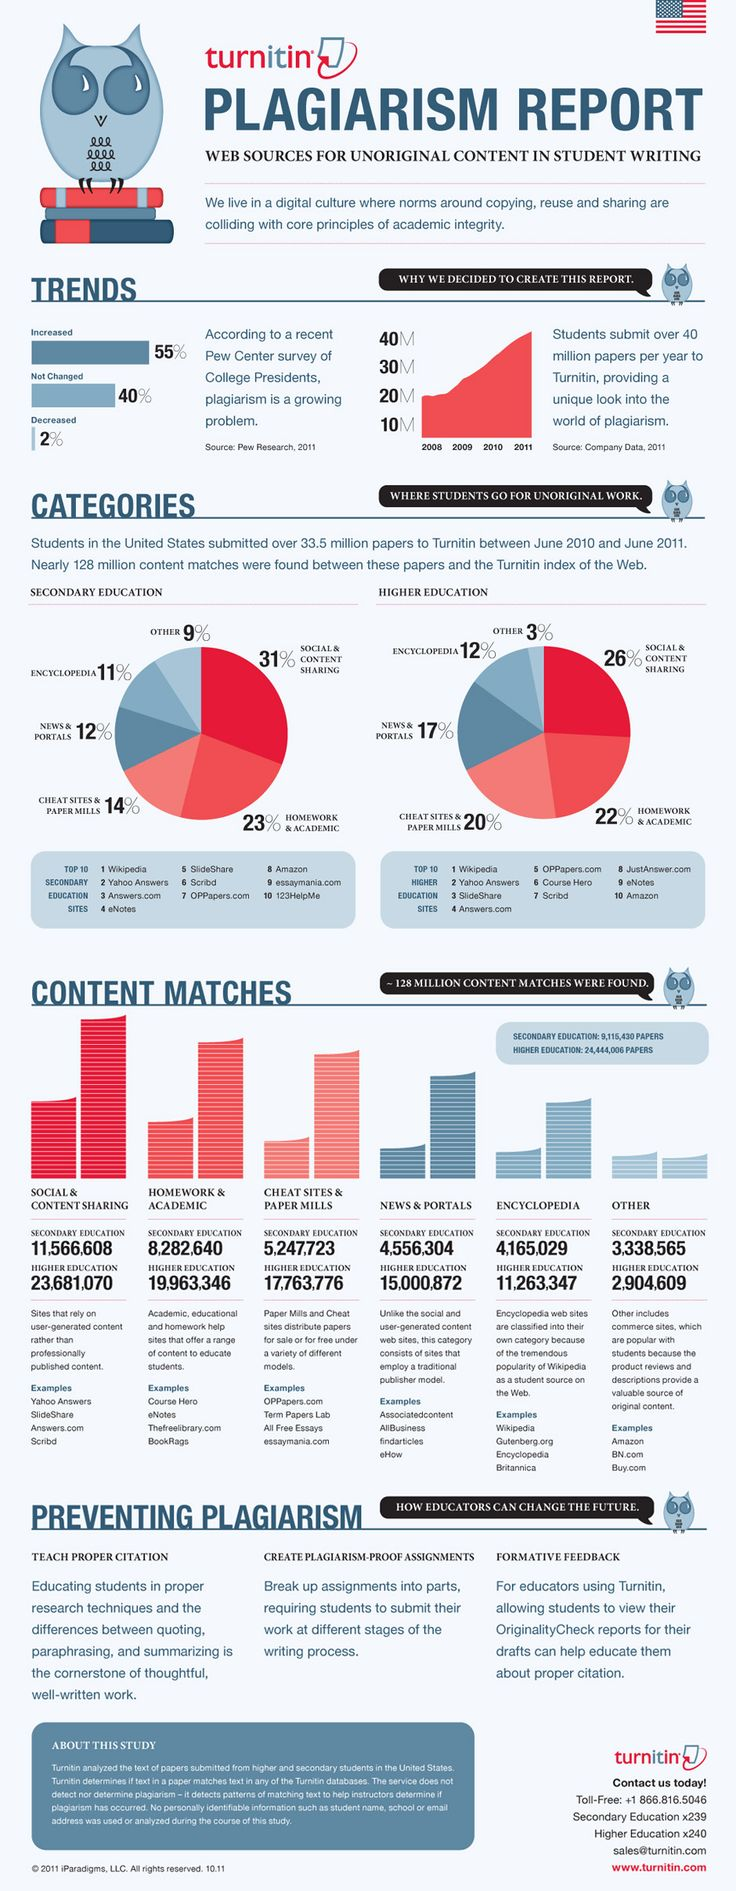 Amazing #infographic on #PLAGIARISM report from #Turnitin.